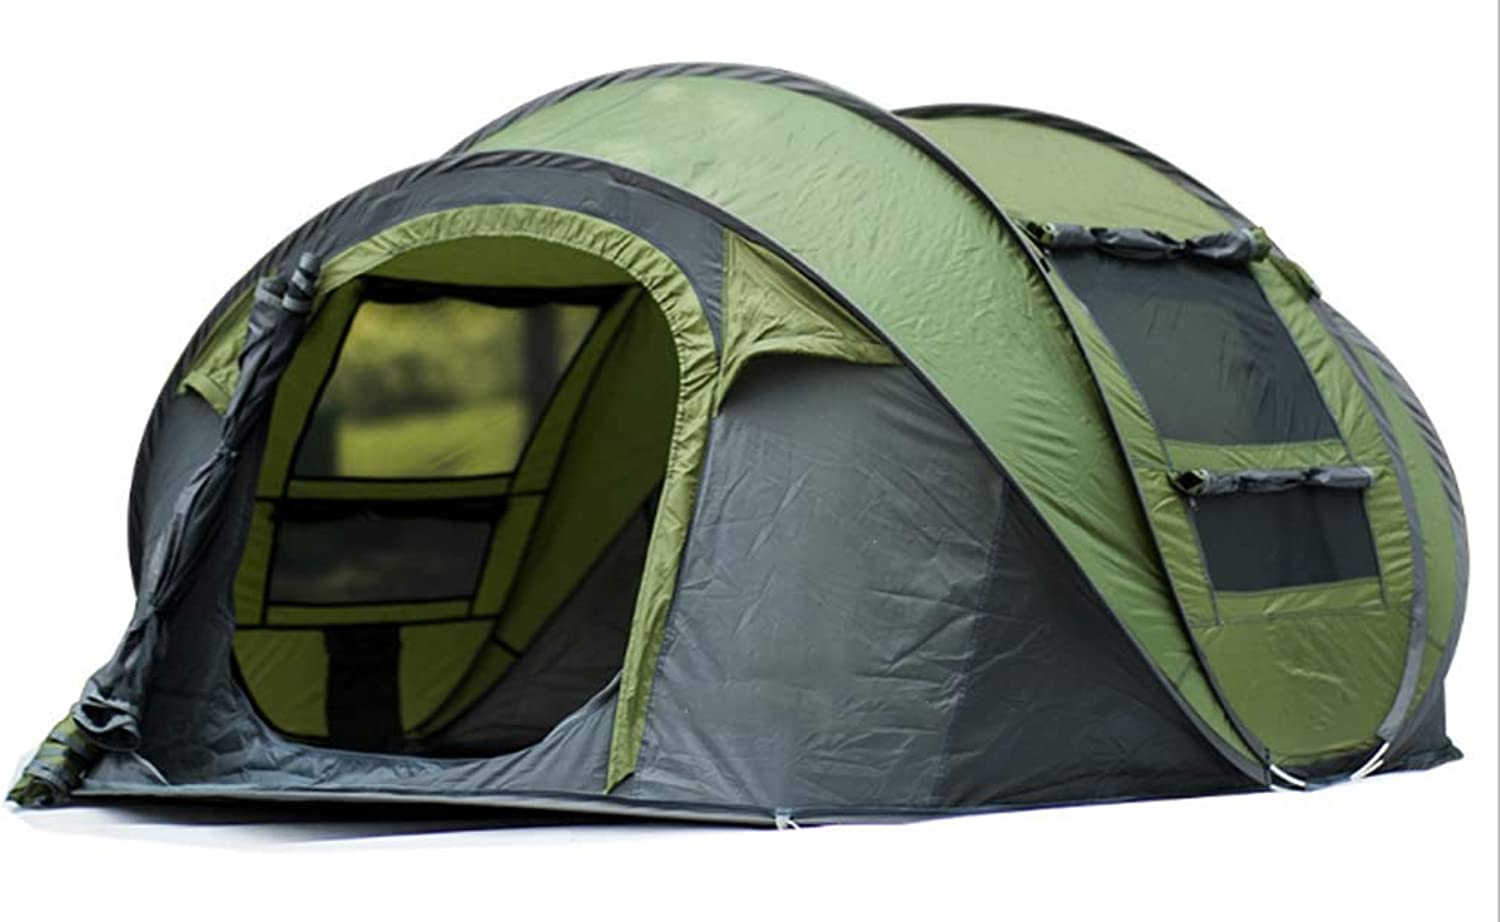 34Person Popup Camping Hiking Tent Waterproof Outdoor Family Trip,1 Bedroom Family Dome Tent